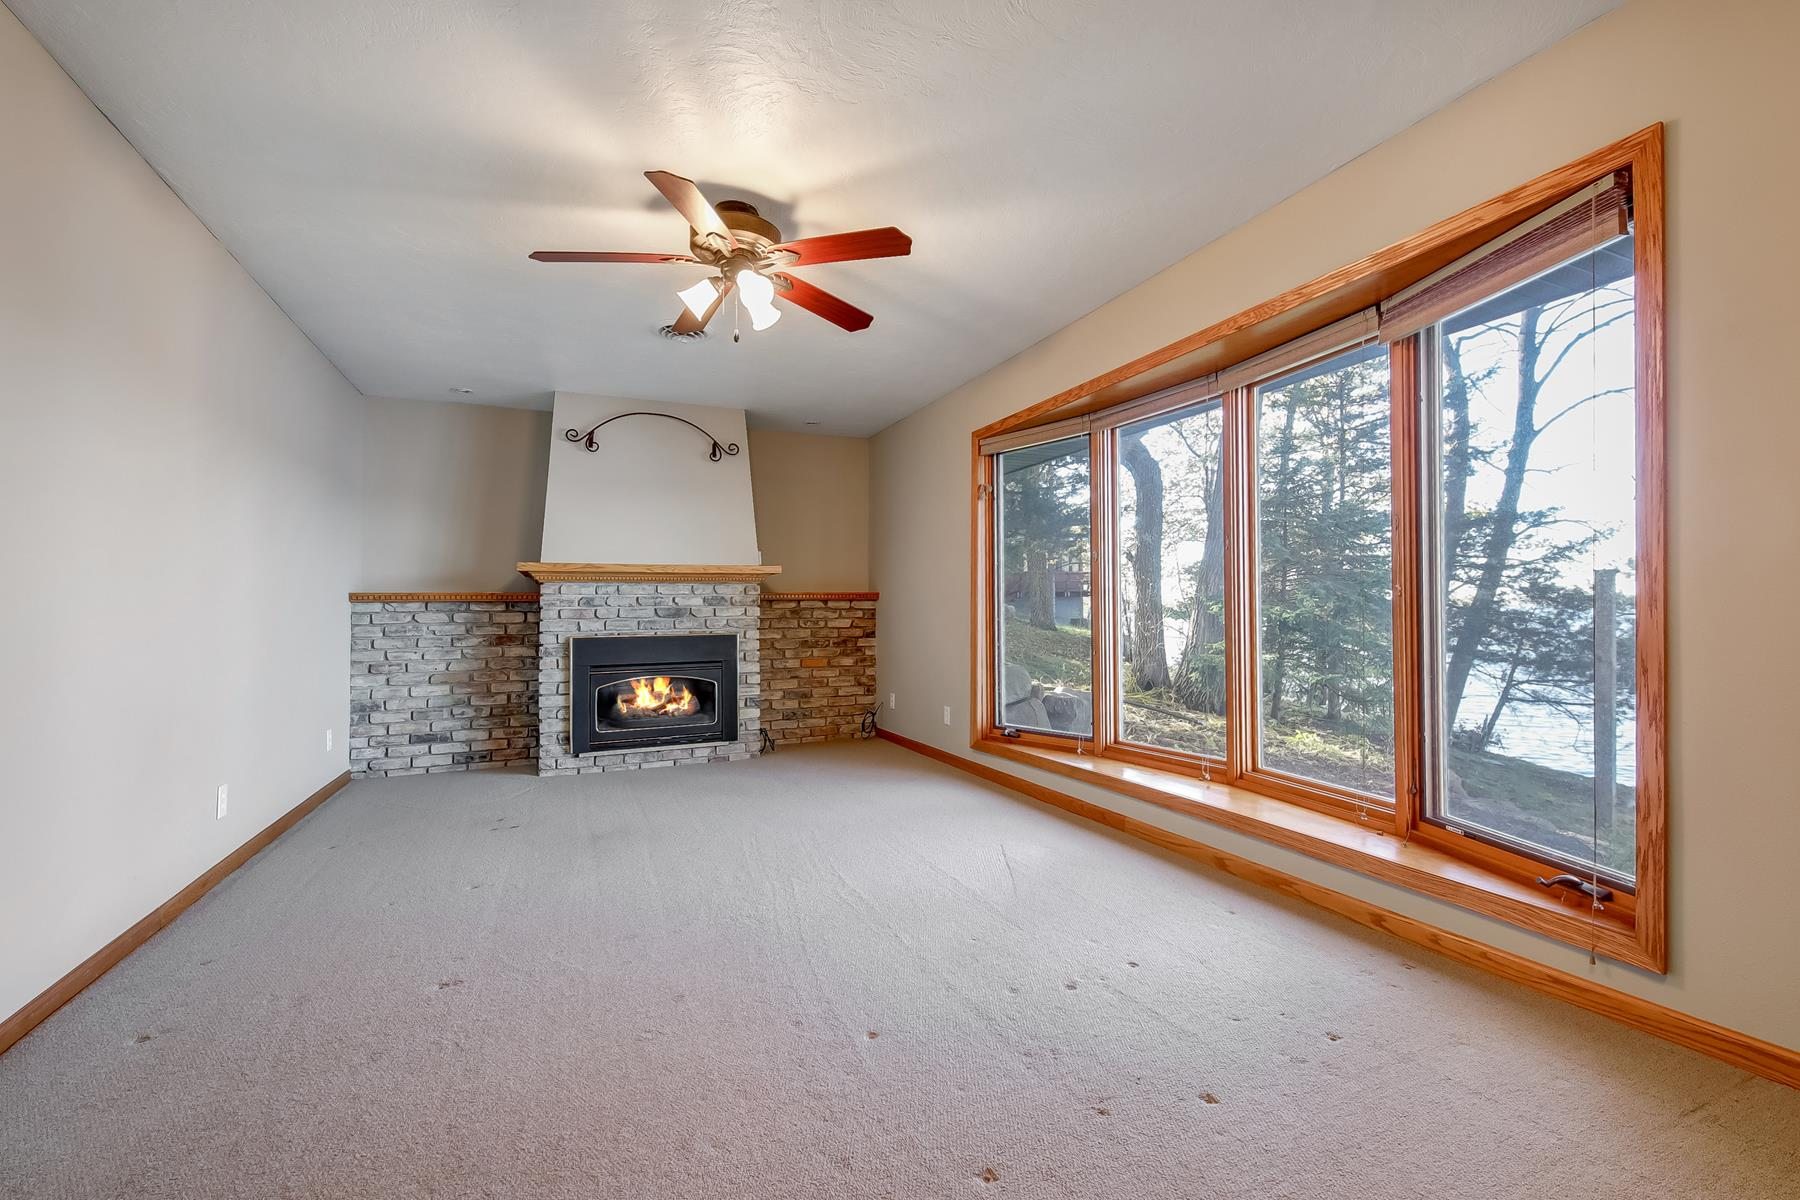 Additional photo for property listing at 7050 140th Avenue NE Spicer, Minnesota 56288 United States